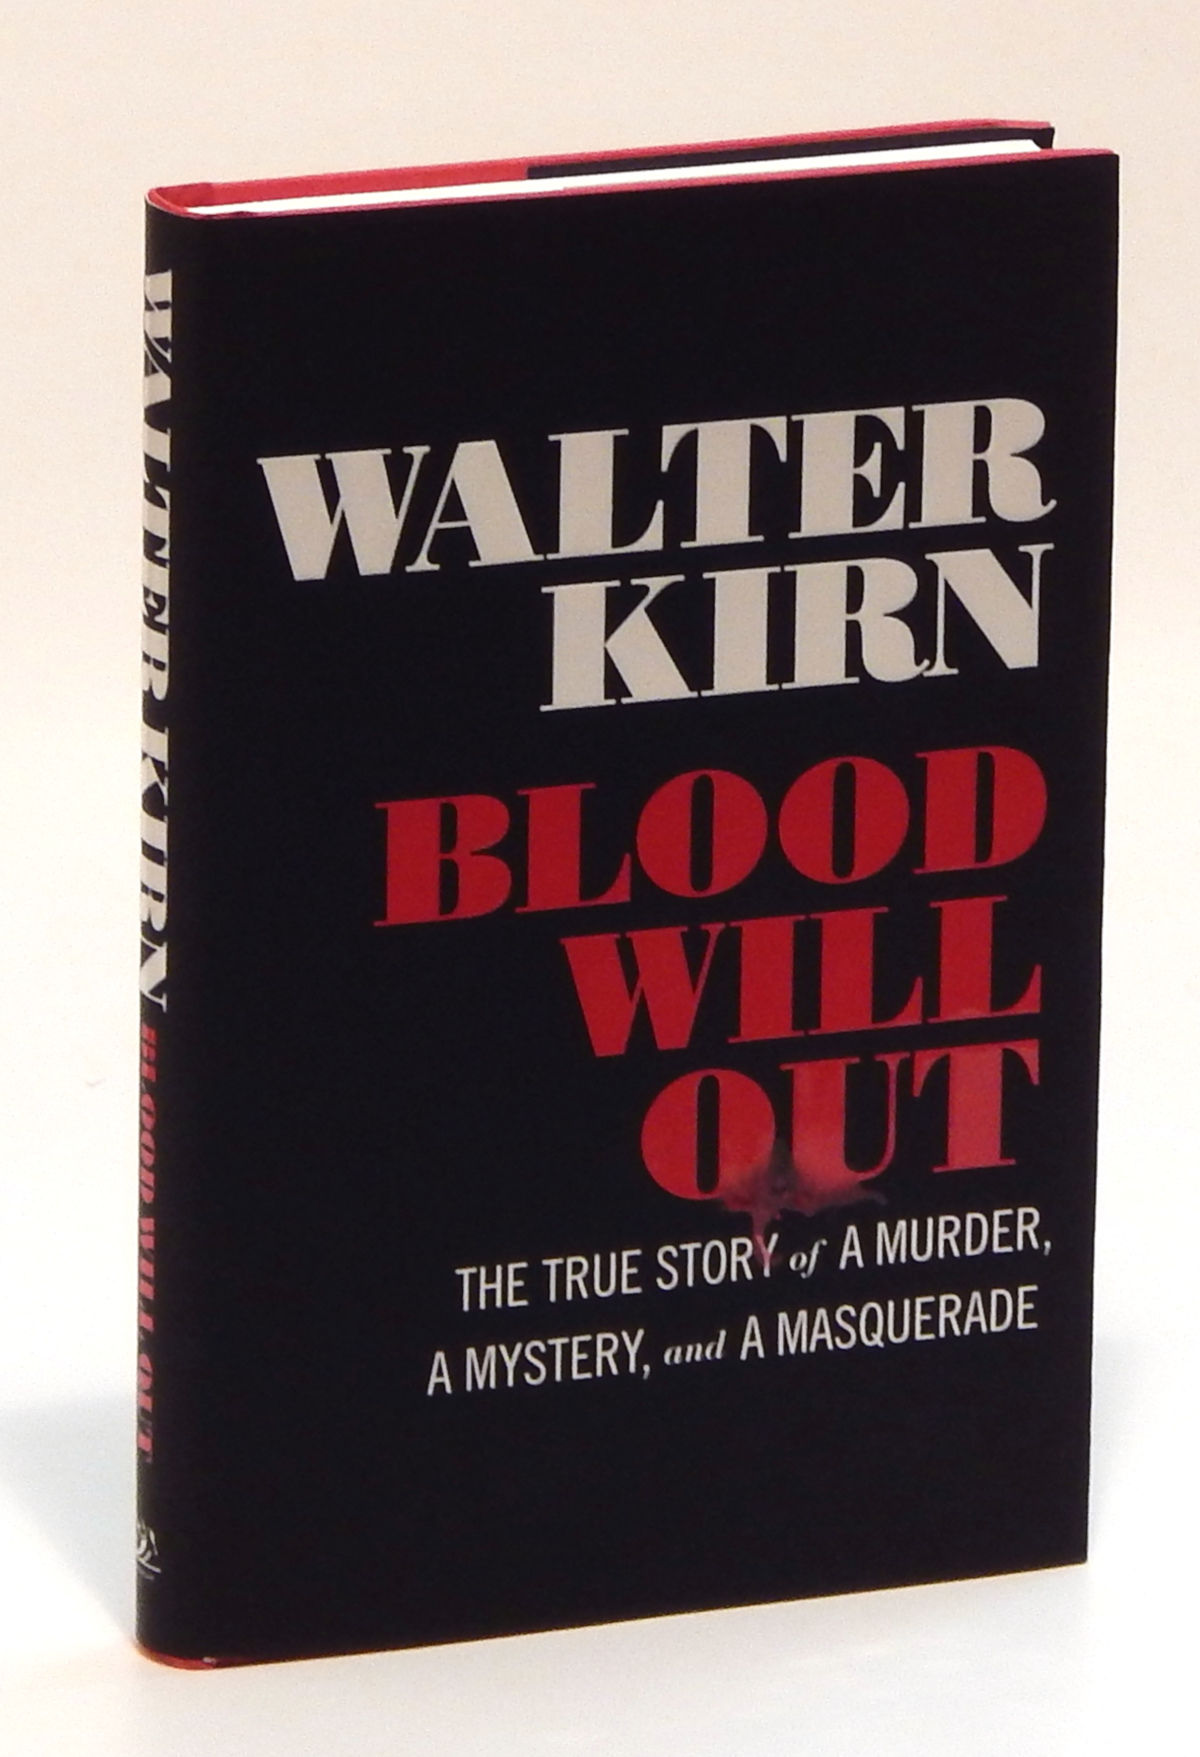 Image for Blood Will Out: The True Story of a Murder, a Mystery and a Masquerade